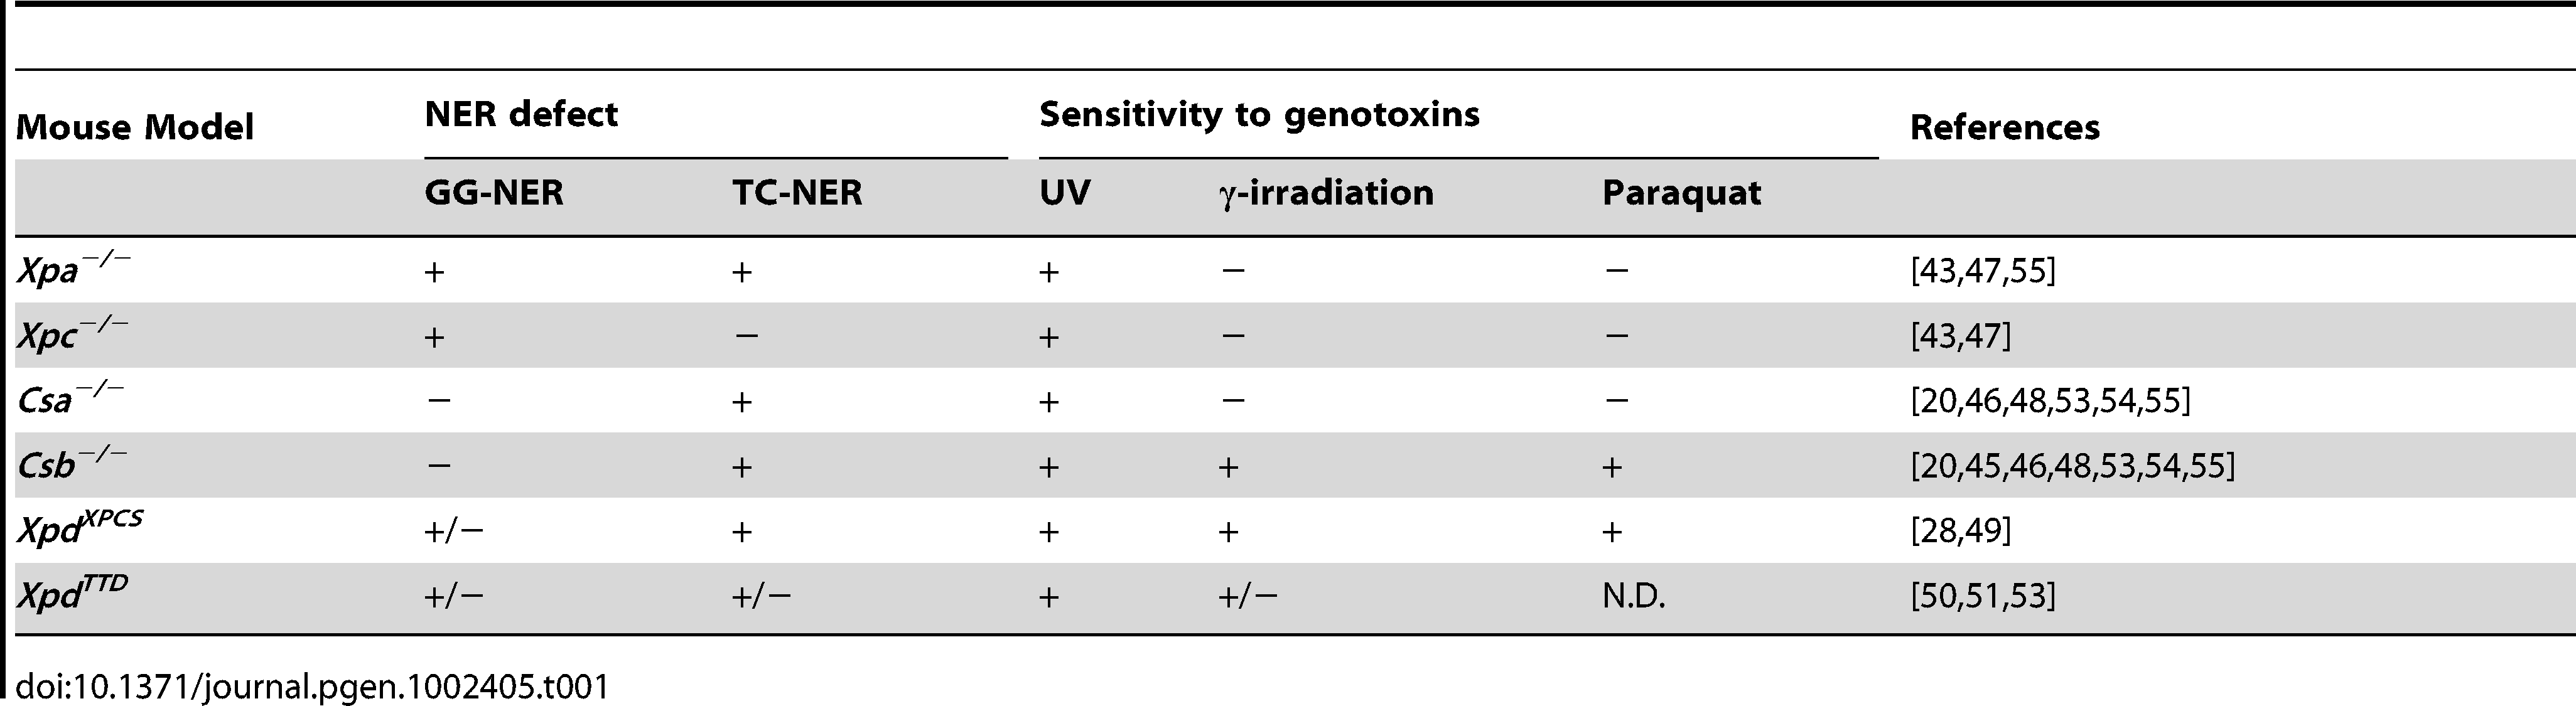 NER defect and sensitivity to genotoxins of embryonic fibroblasts isolated from NER–deficient mouse models.